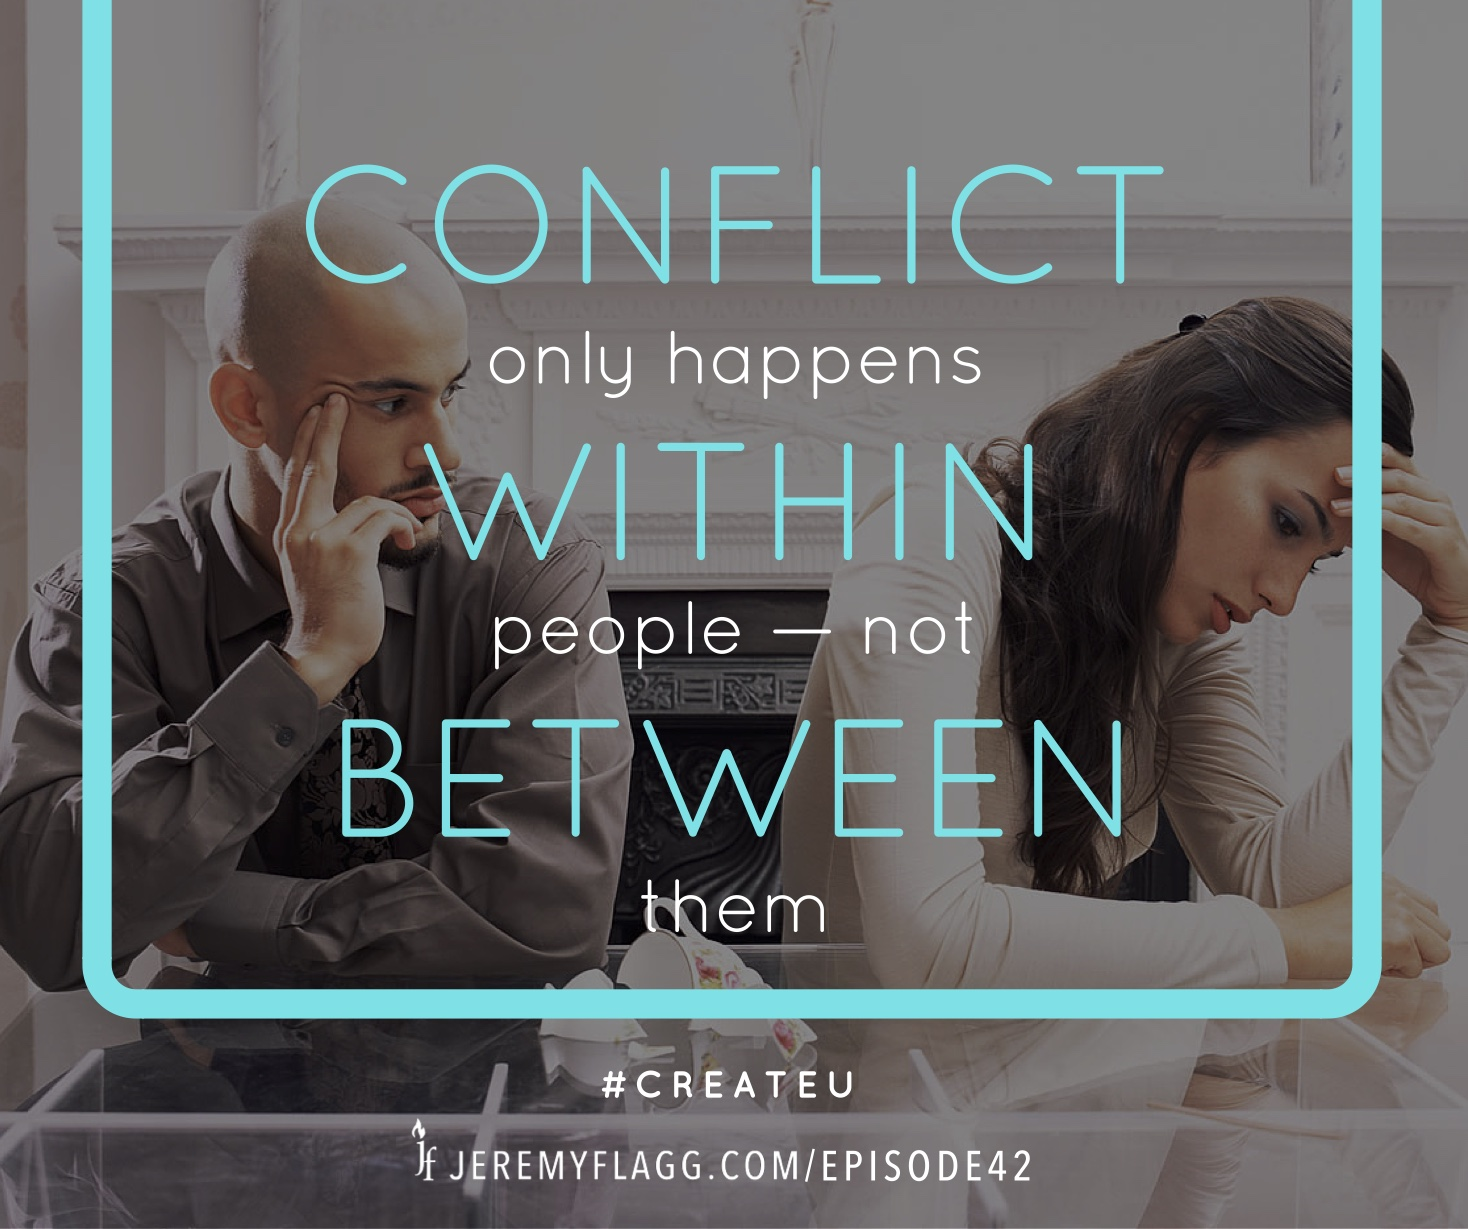 Conflict-happens-within-not-between-Jeremy-Flagg-quote-FB